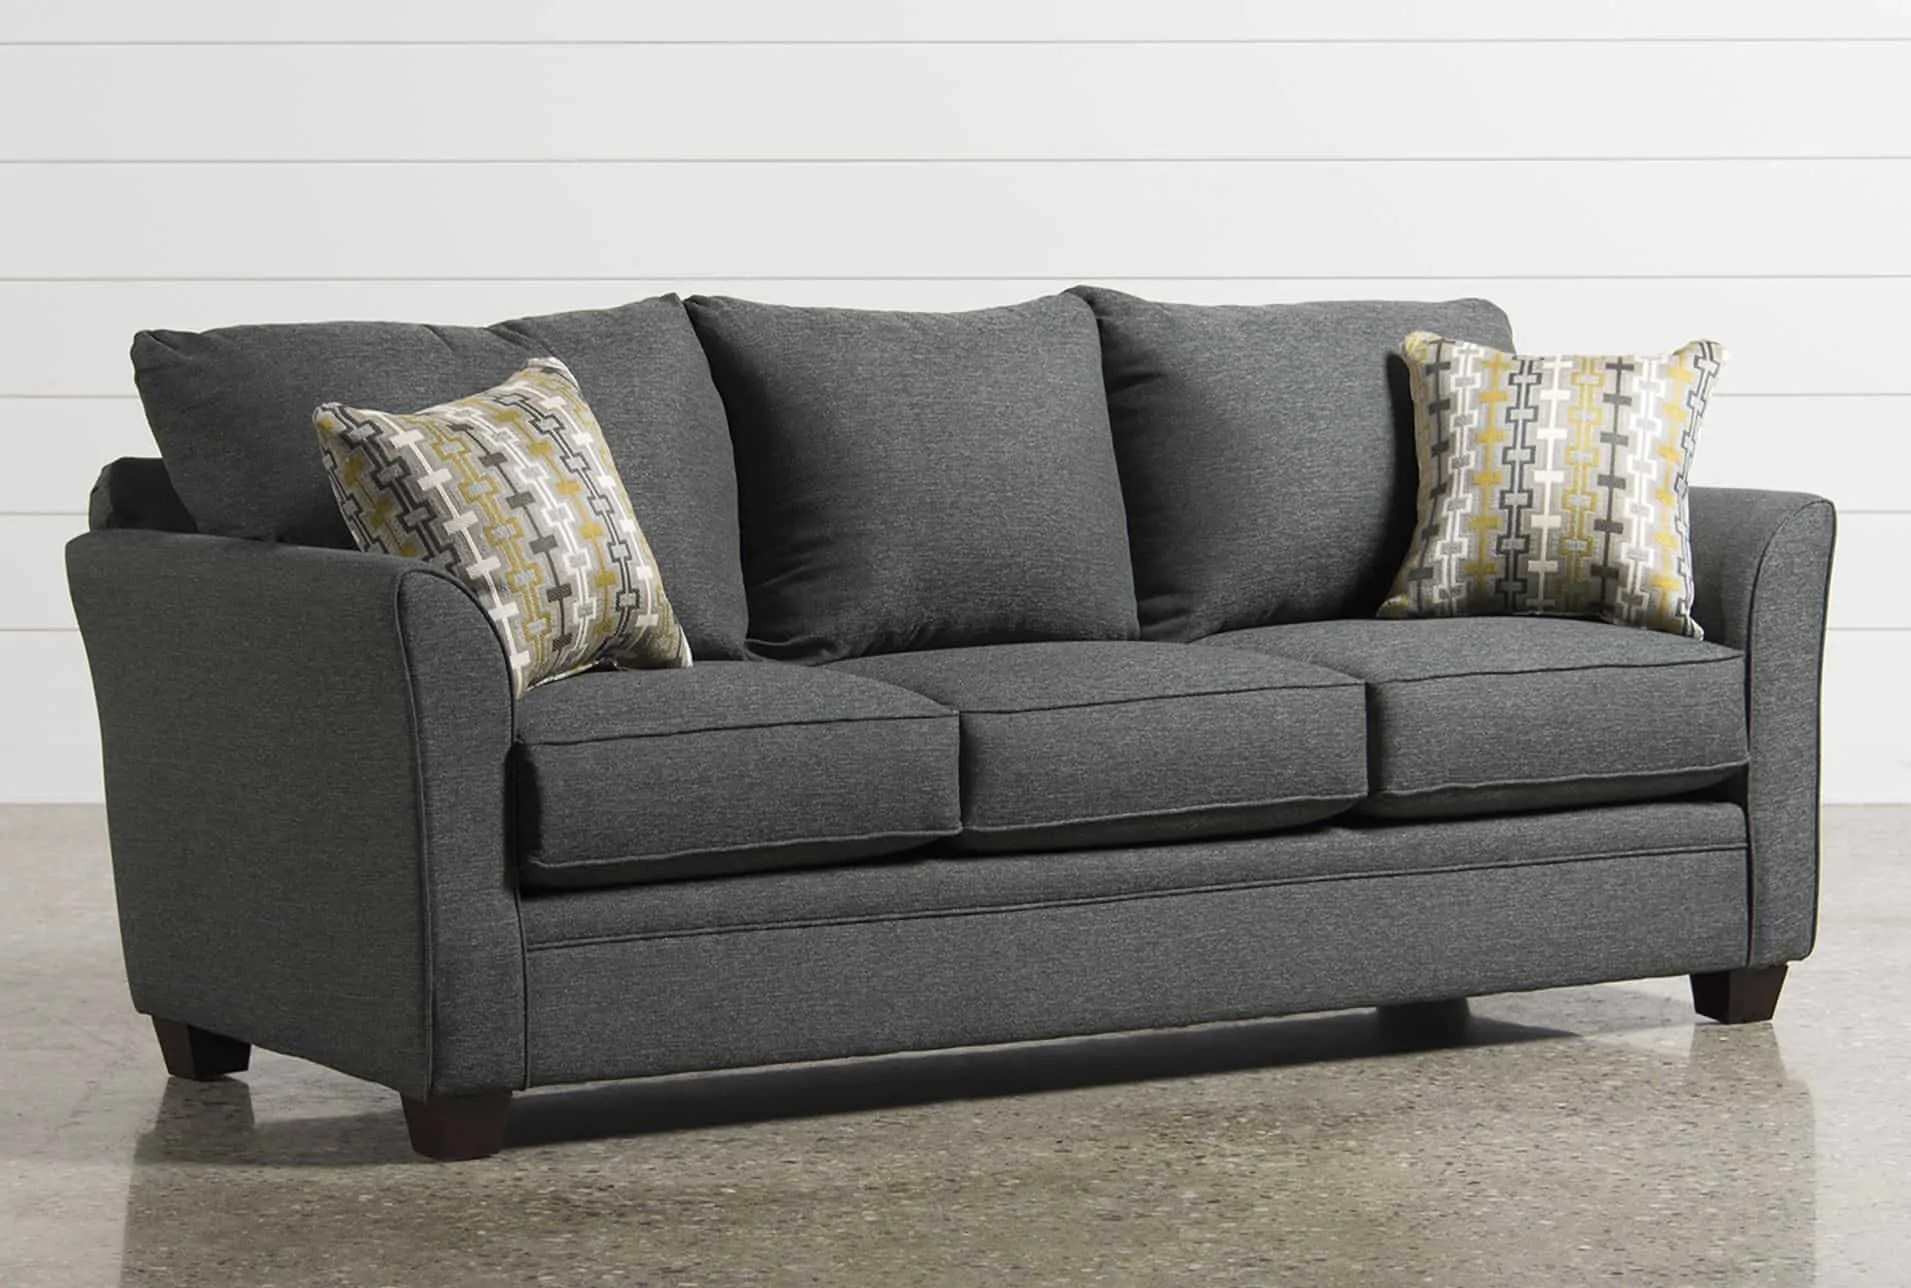 spanish sofa brand gumtree sofas londonderry a right for your home and how to find it decoration